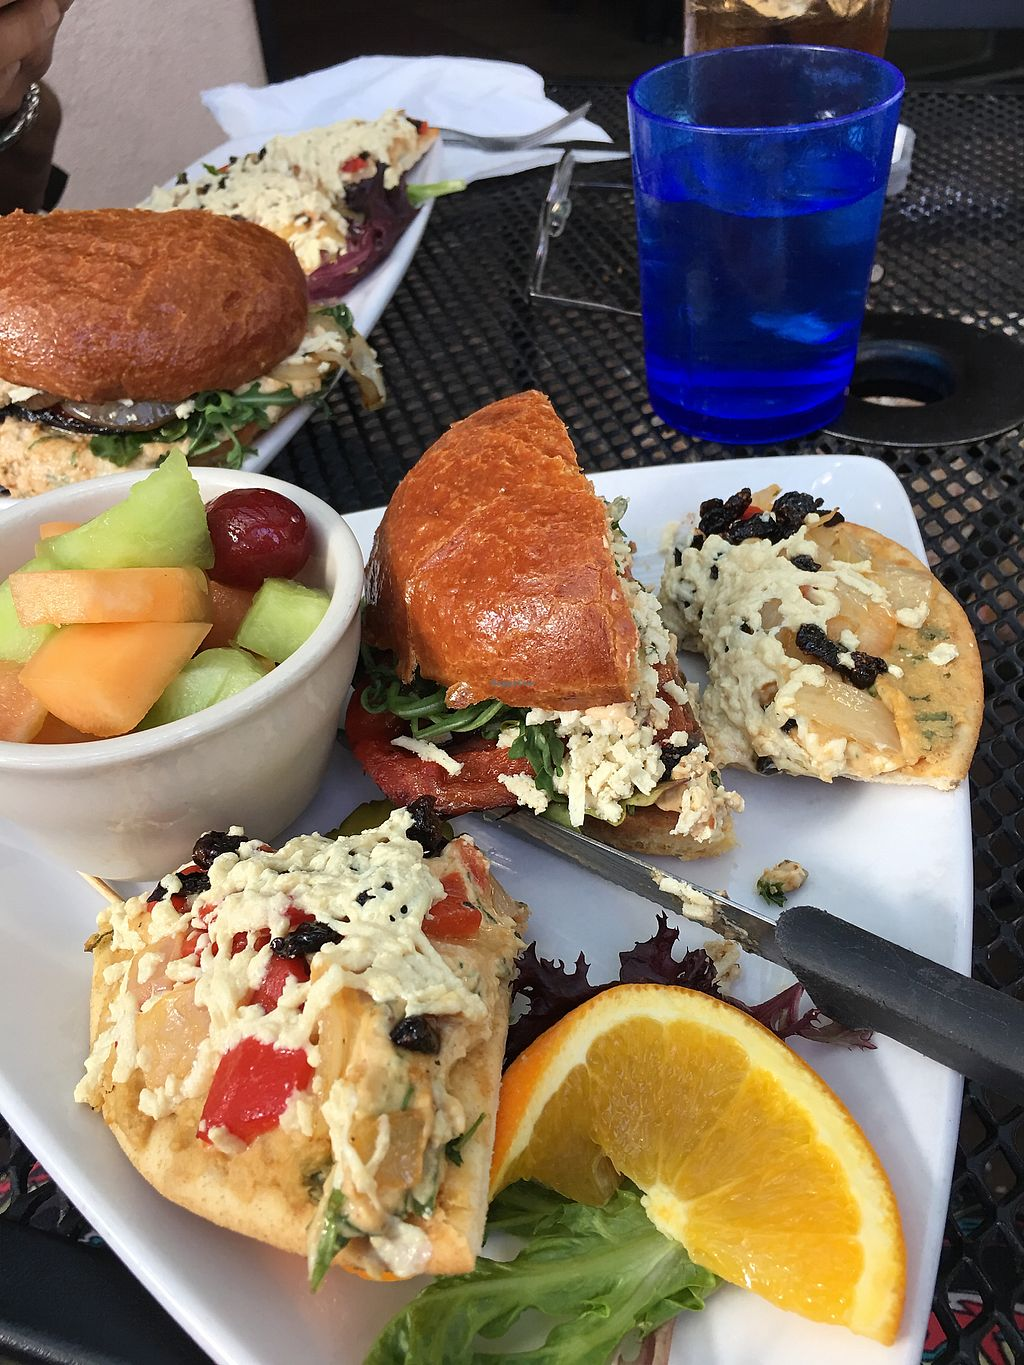 """Photo of Secret Garden Cafe  by <a href=""""/members/profile/VeganHappy334"""">VeganHappy334</a> <br/>Secret Garden 2 slices of hummus pizza and 1/2 portobello Sandwich  <br/> January 21, 2018  - <a href='/contact/abuse/image/26898/349105'>Report</a>"""